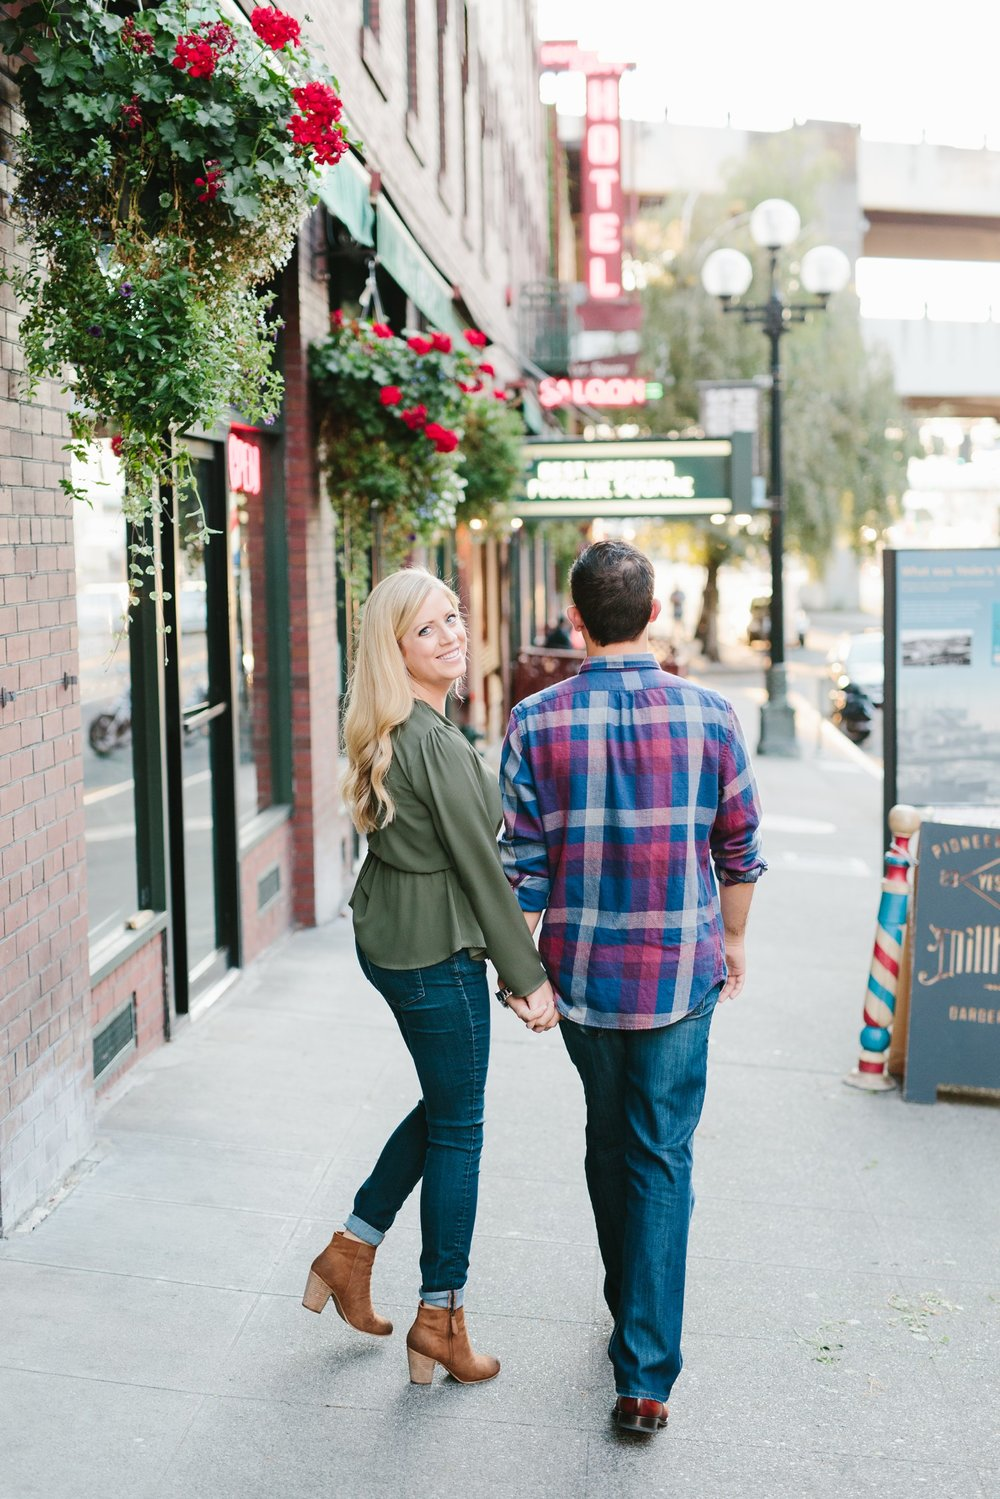 cameron-zegers-photography-engagement-seattle_0004.jpg